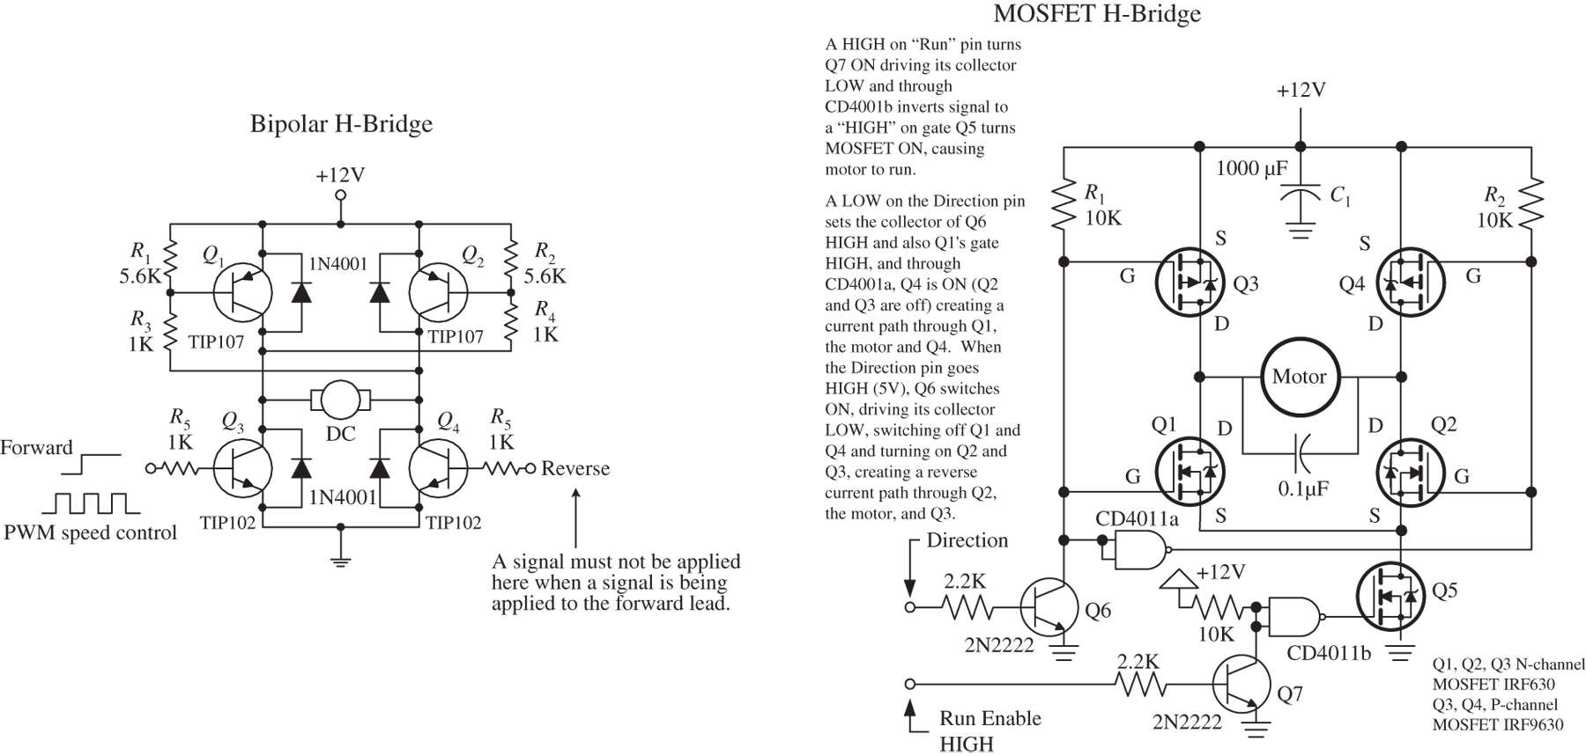 Motors Practical Electronics For Inventors Fourth Edition Paul Diagram Together With L298 H Bridge Circuit Pin On This Sets Q4 And Q1 Into Conduction Allowing Current To Pass Through The Motor In Opposite Direction Mosfet Works A Similar Manner